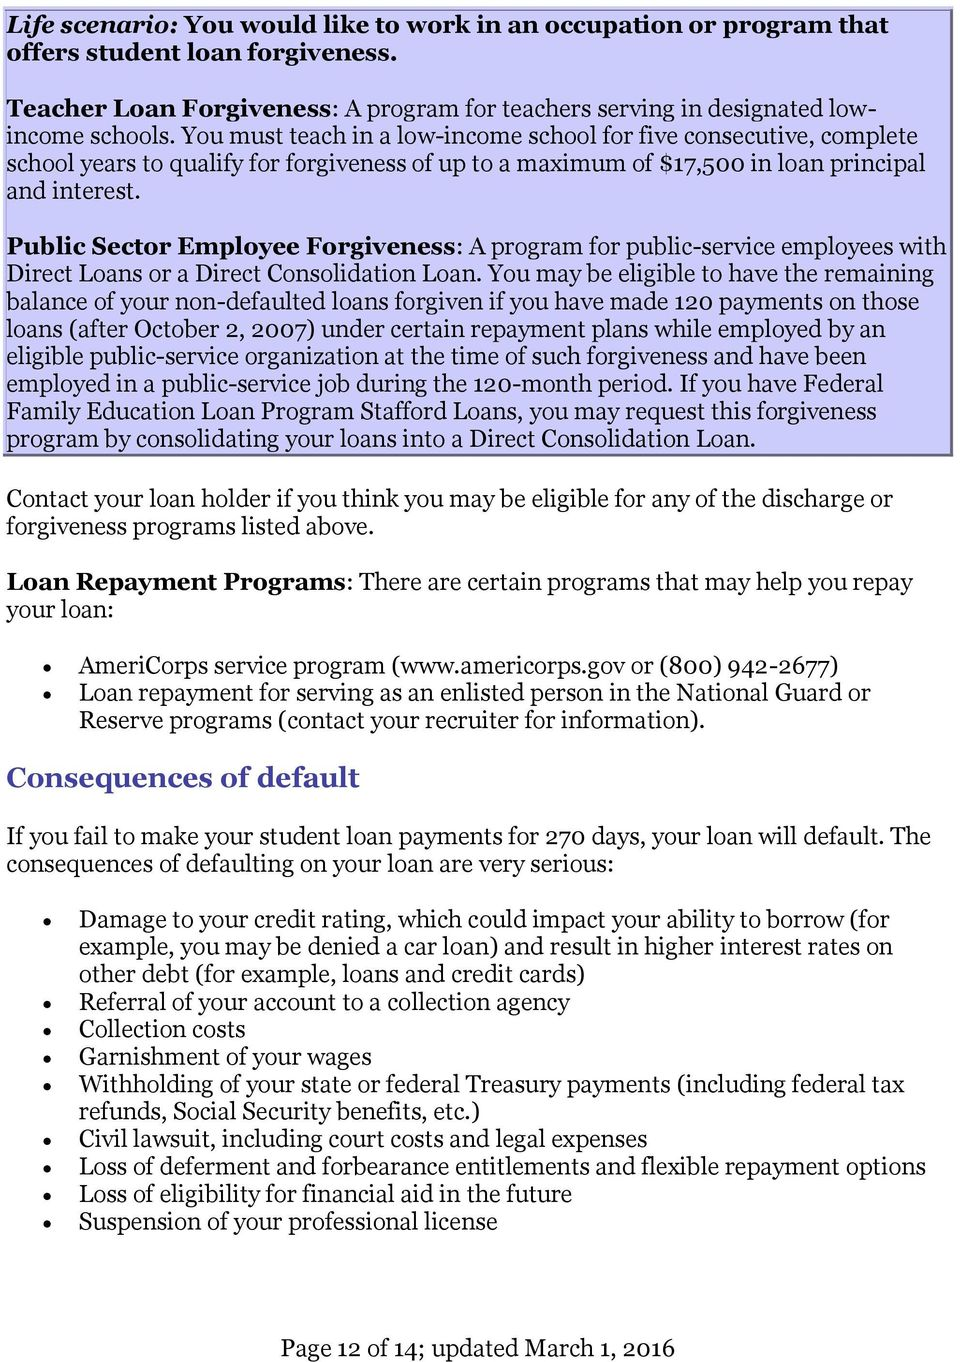 Public Sector Employee Forgiveness: A program for public-service employees with Direct Loans or a Direct Consolidation Loan.